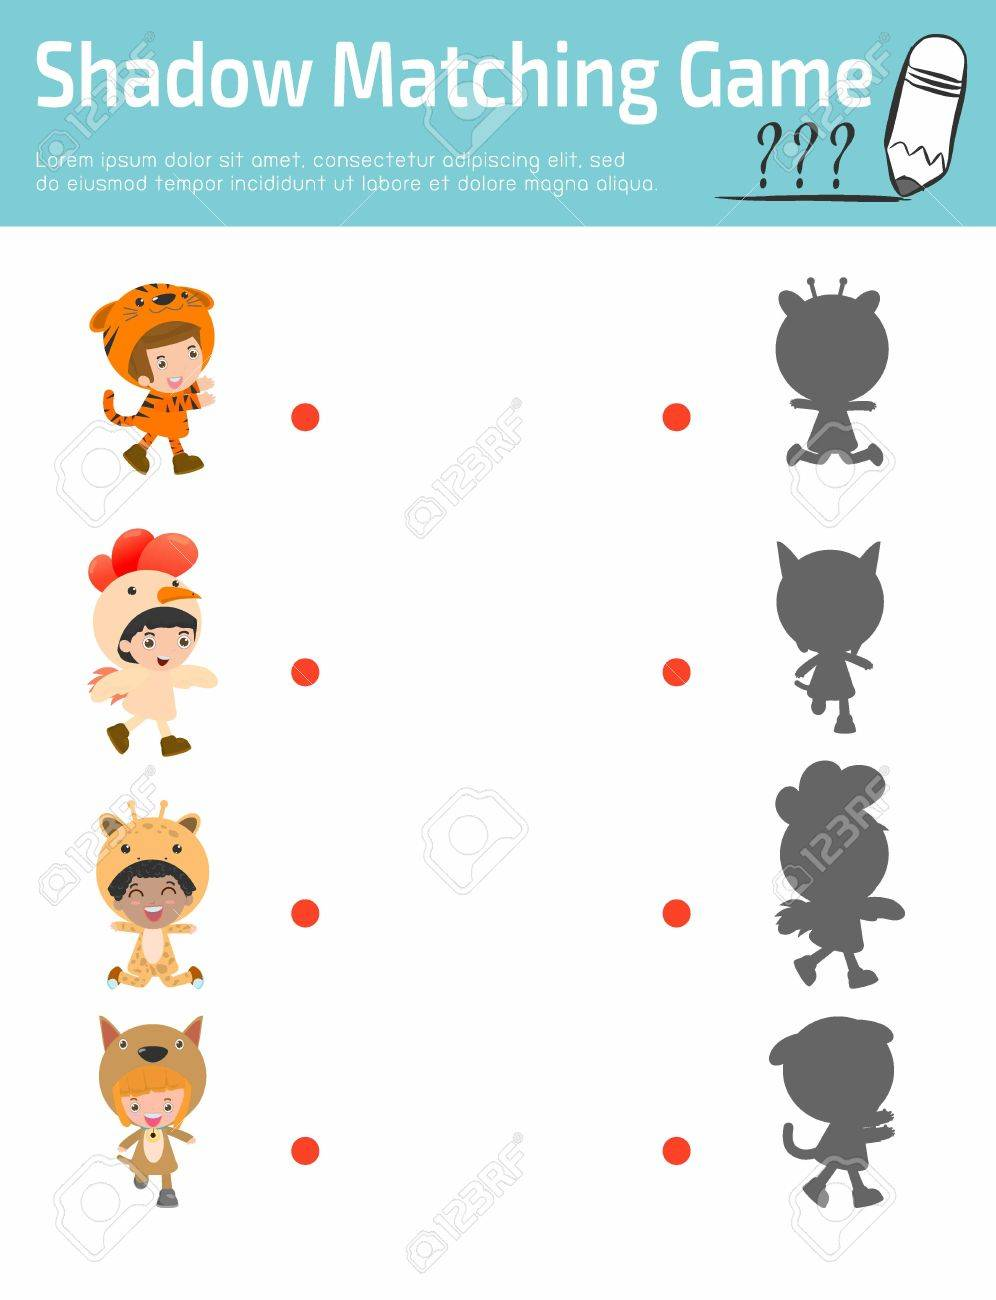 Shadow Matching Game For Kids Visual Game For Children Child